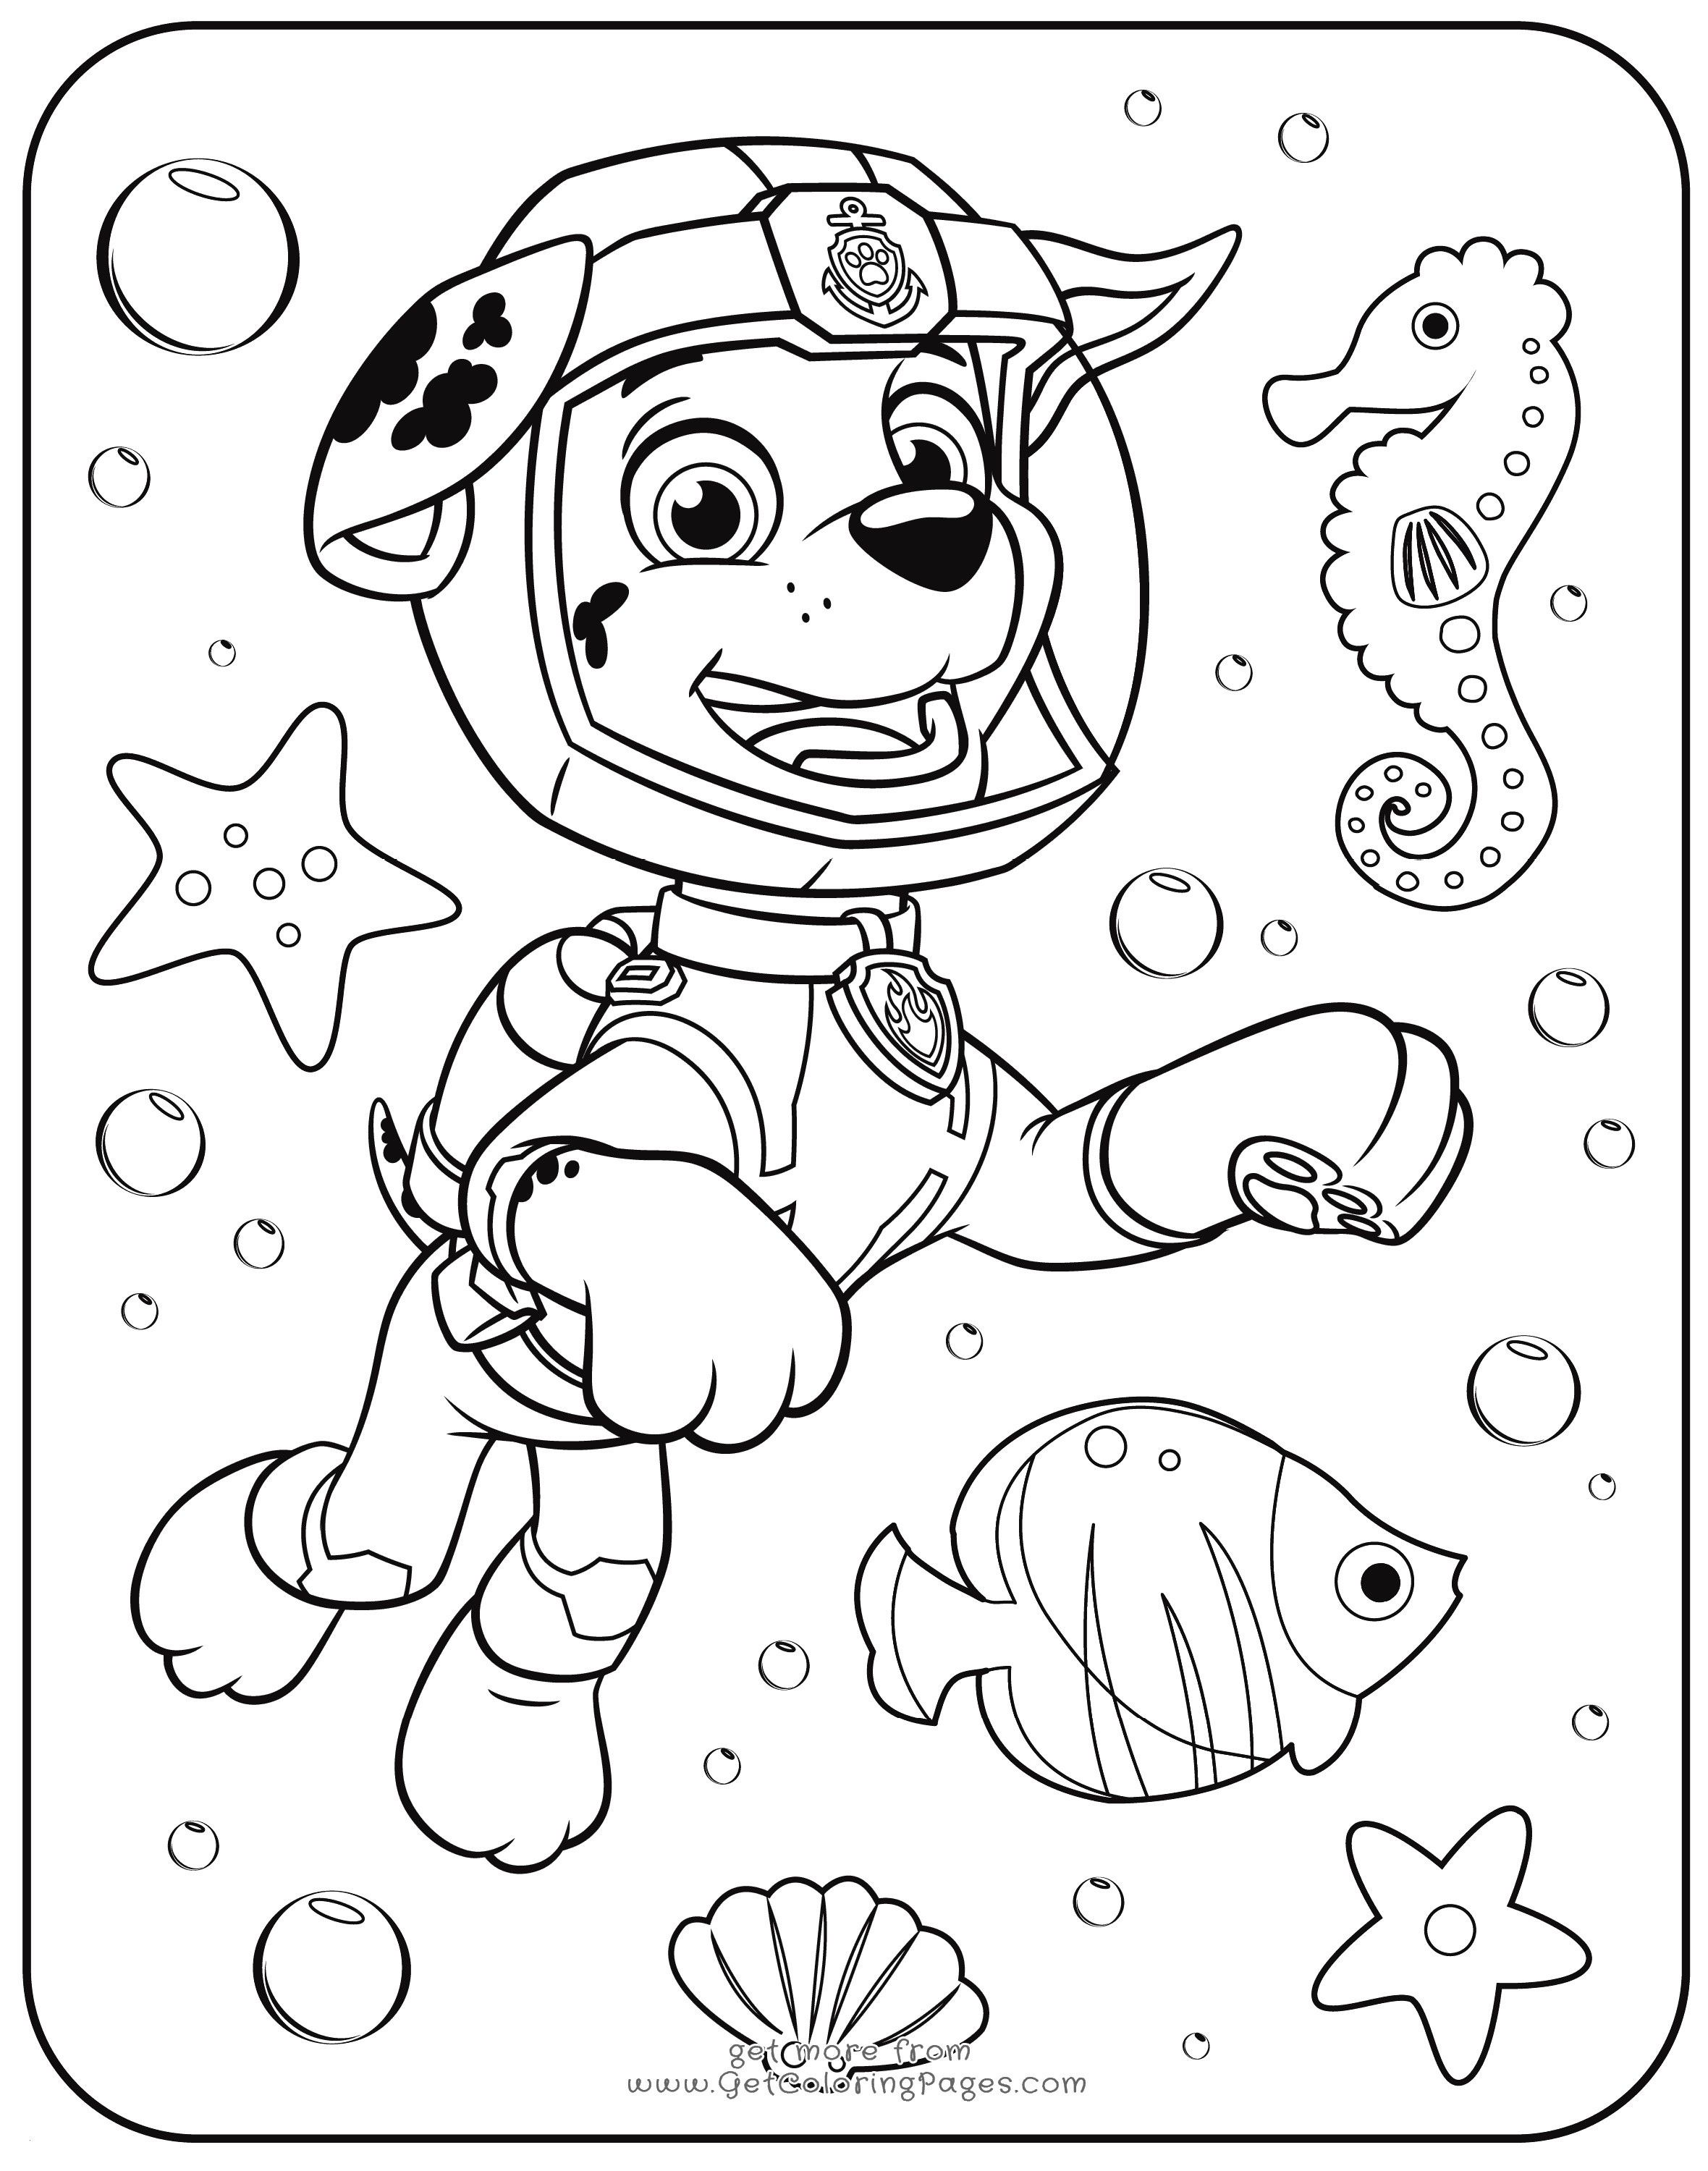 Paw Patrol Coloring Sheets Awesome Image Paw Patrol Everest Ausmalbilder Uploadertalk Paw Patrol Coloring Pages Paw Patrol Coloring Disney Coloring Pages